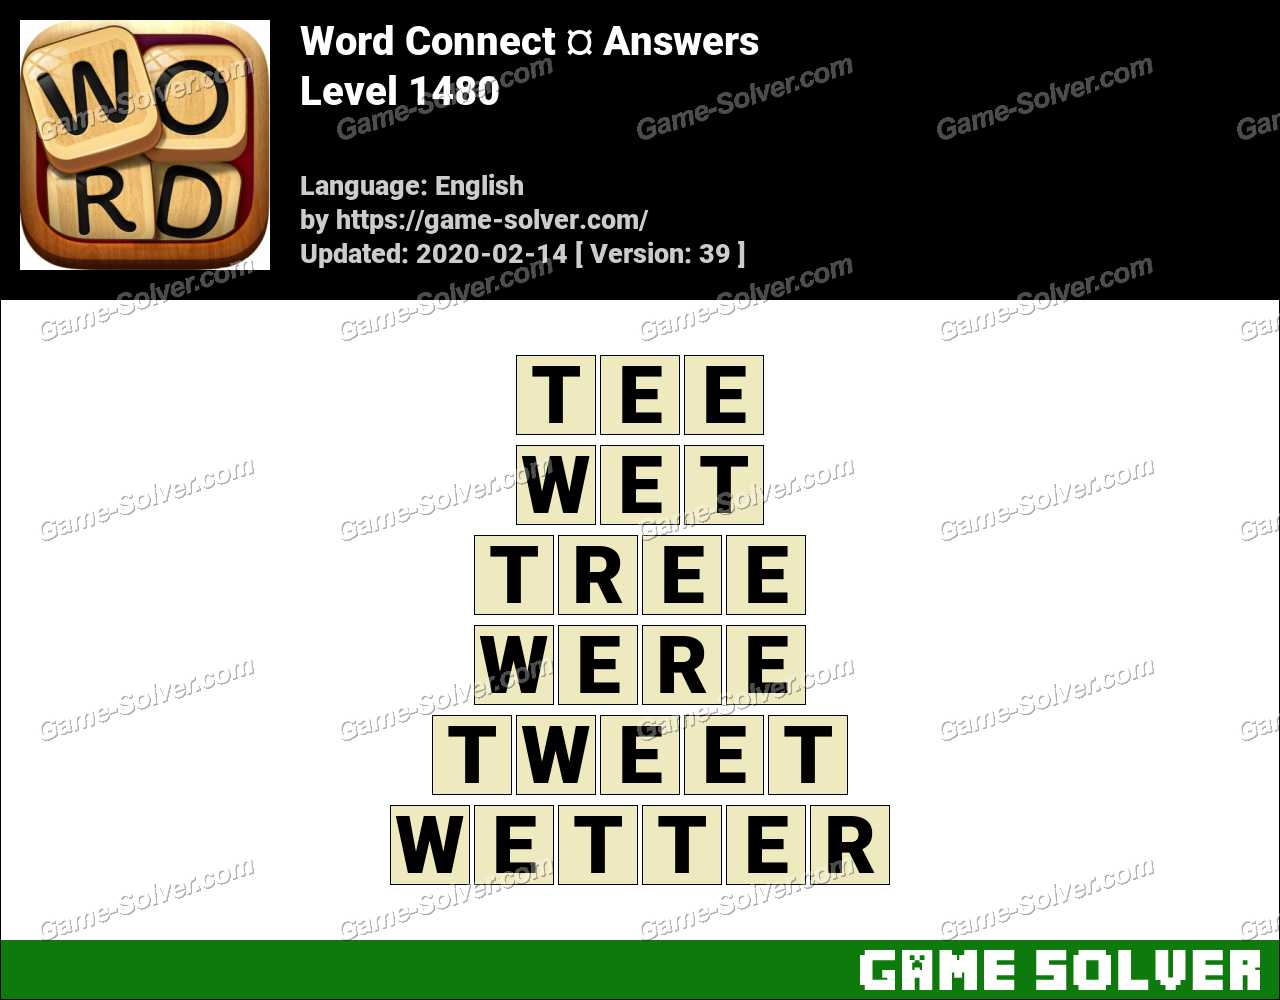 Word Connect Level 1480 Answers